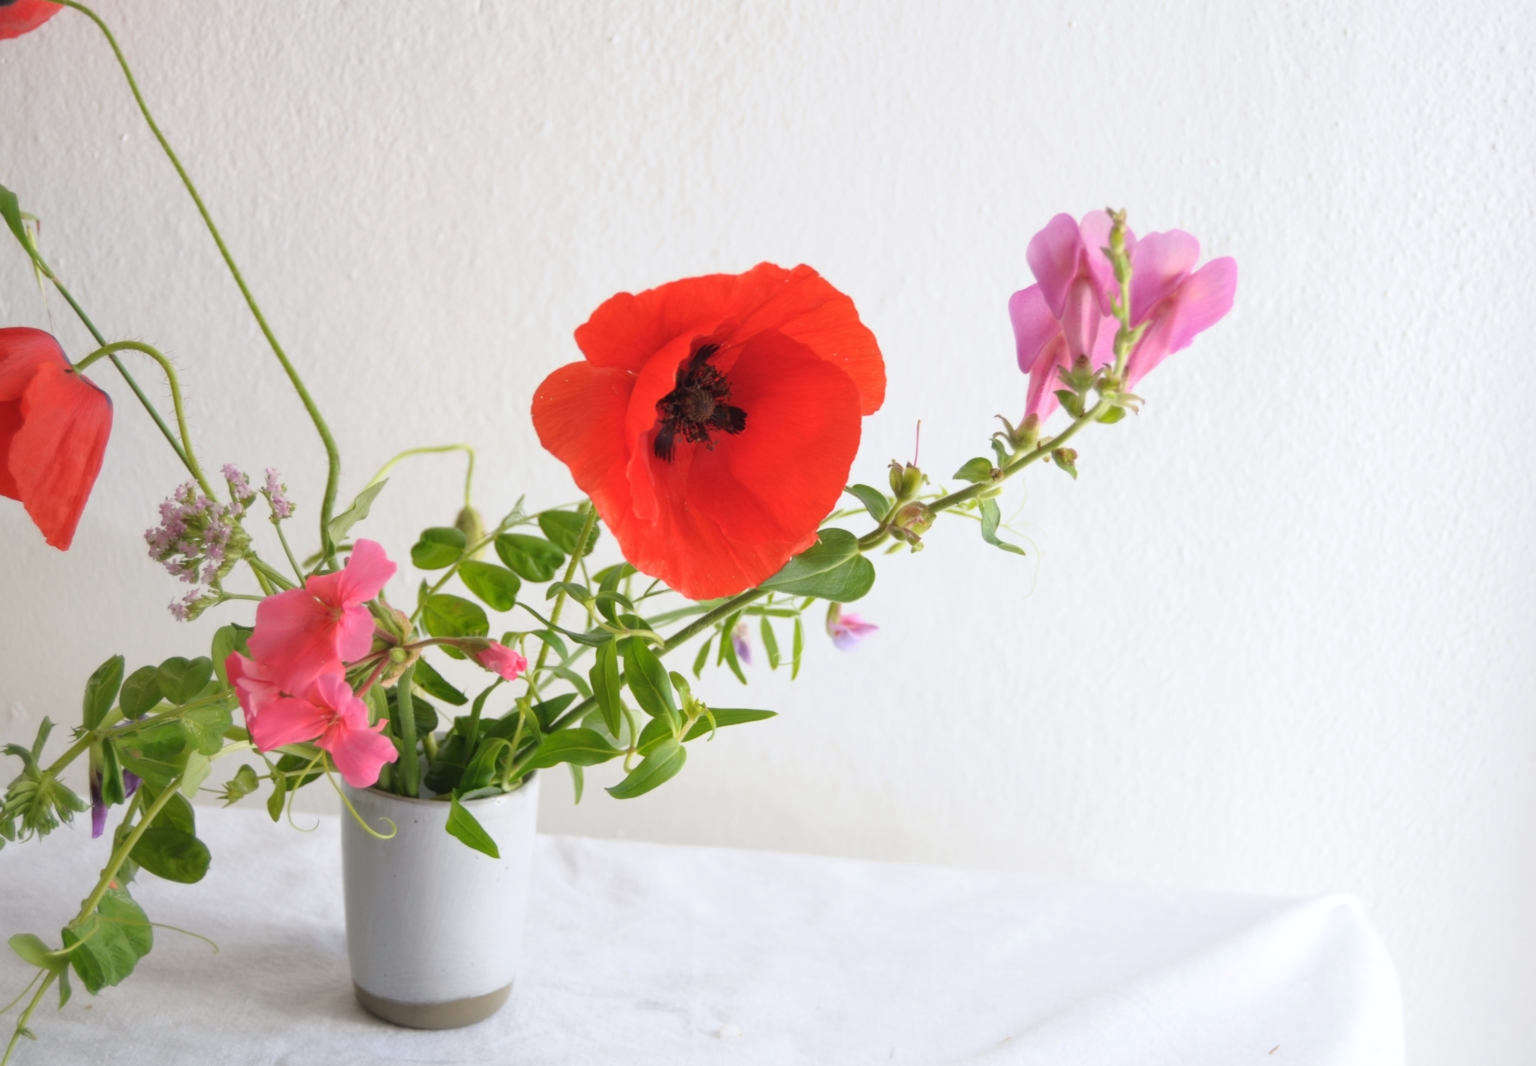 Rethinking poppies how to make a fragile flower last longer the wild red poppies of europe papaver rhoeas have symbolized remembrance for soldiers since world war i when poet john mccrae wrote in flanders field mightylinksfo